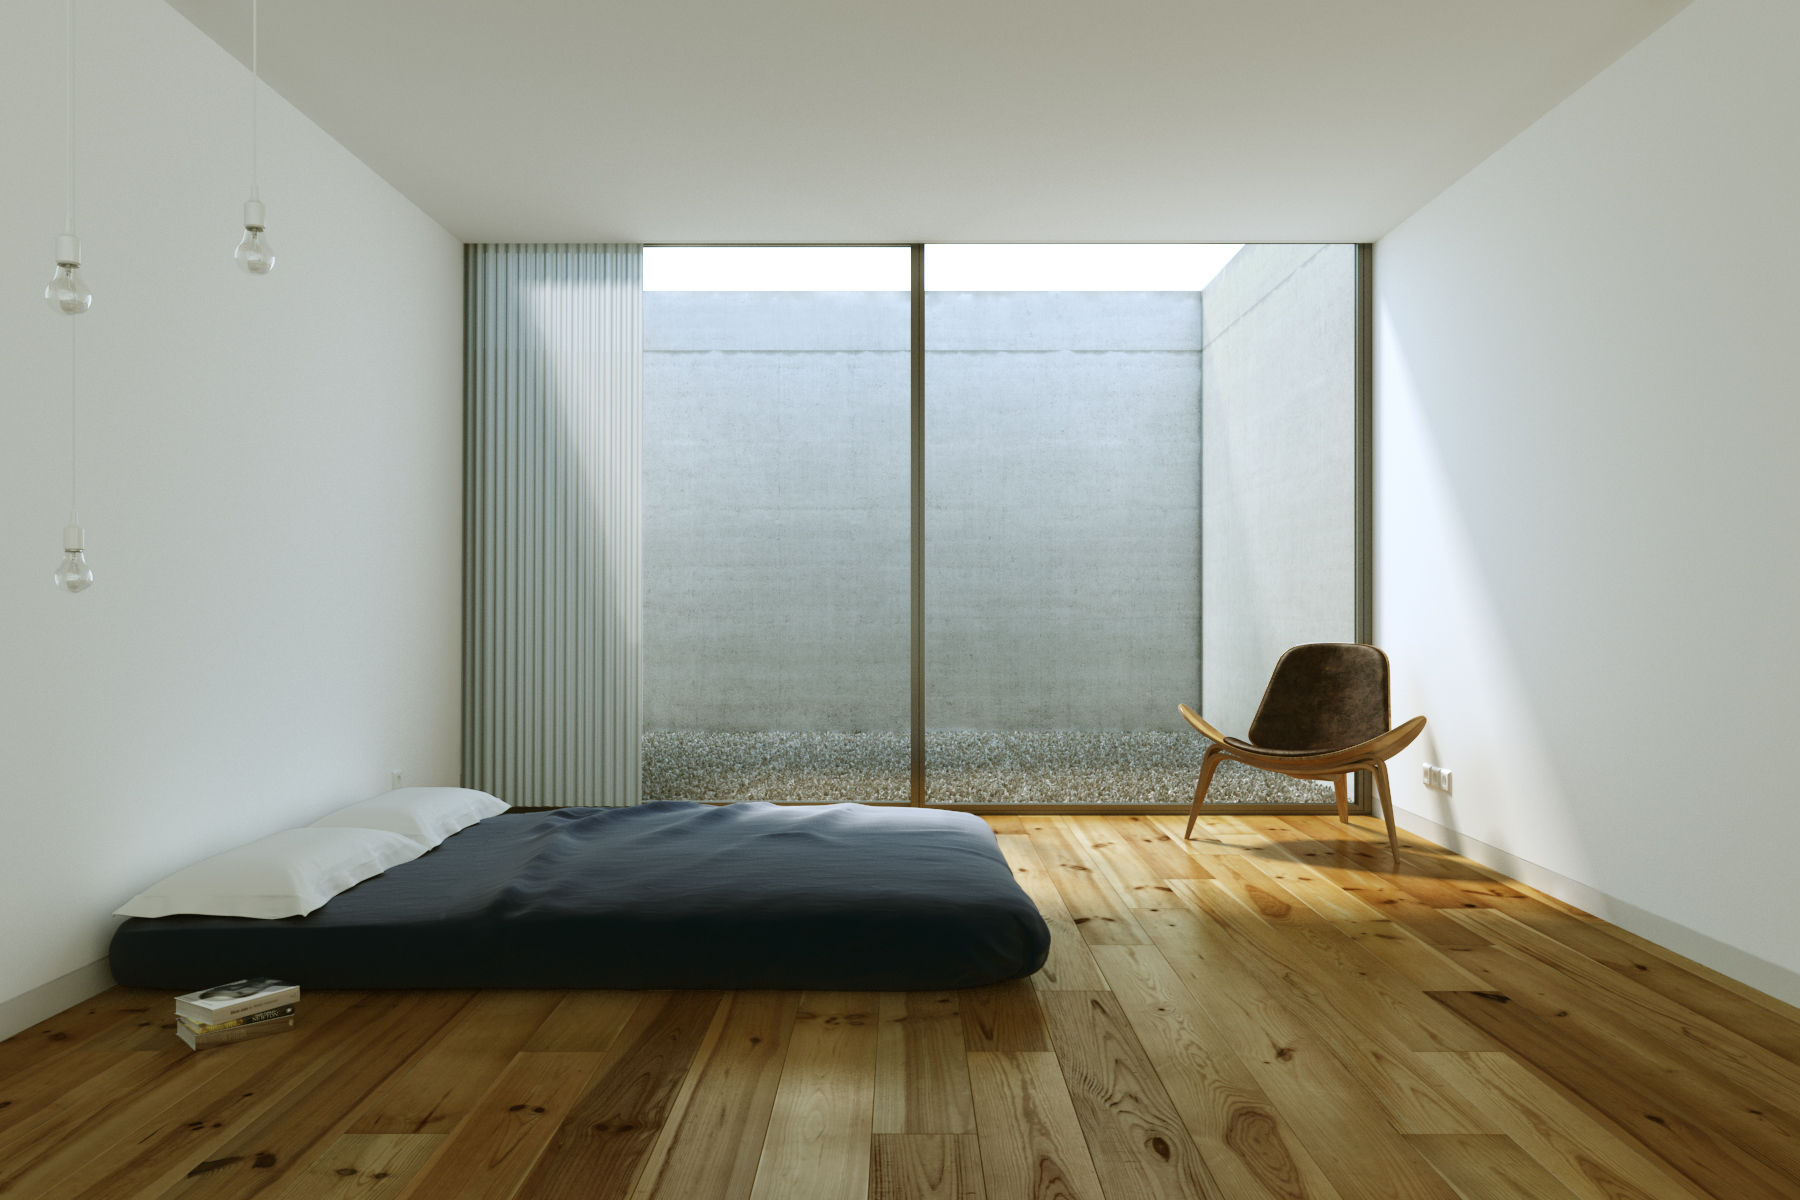 25 beautifully simple rooms that take minimalism to the